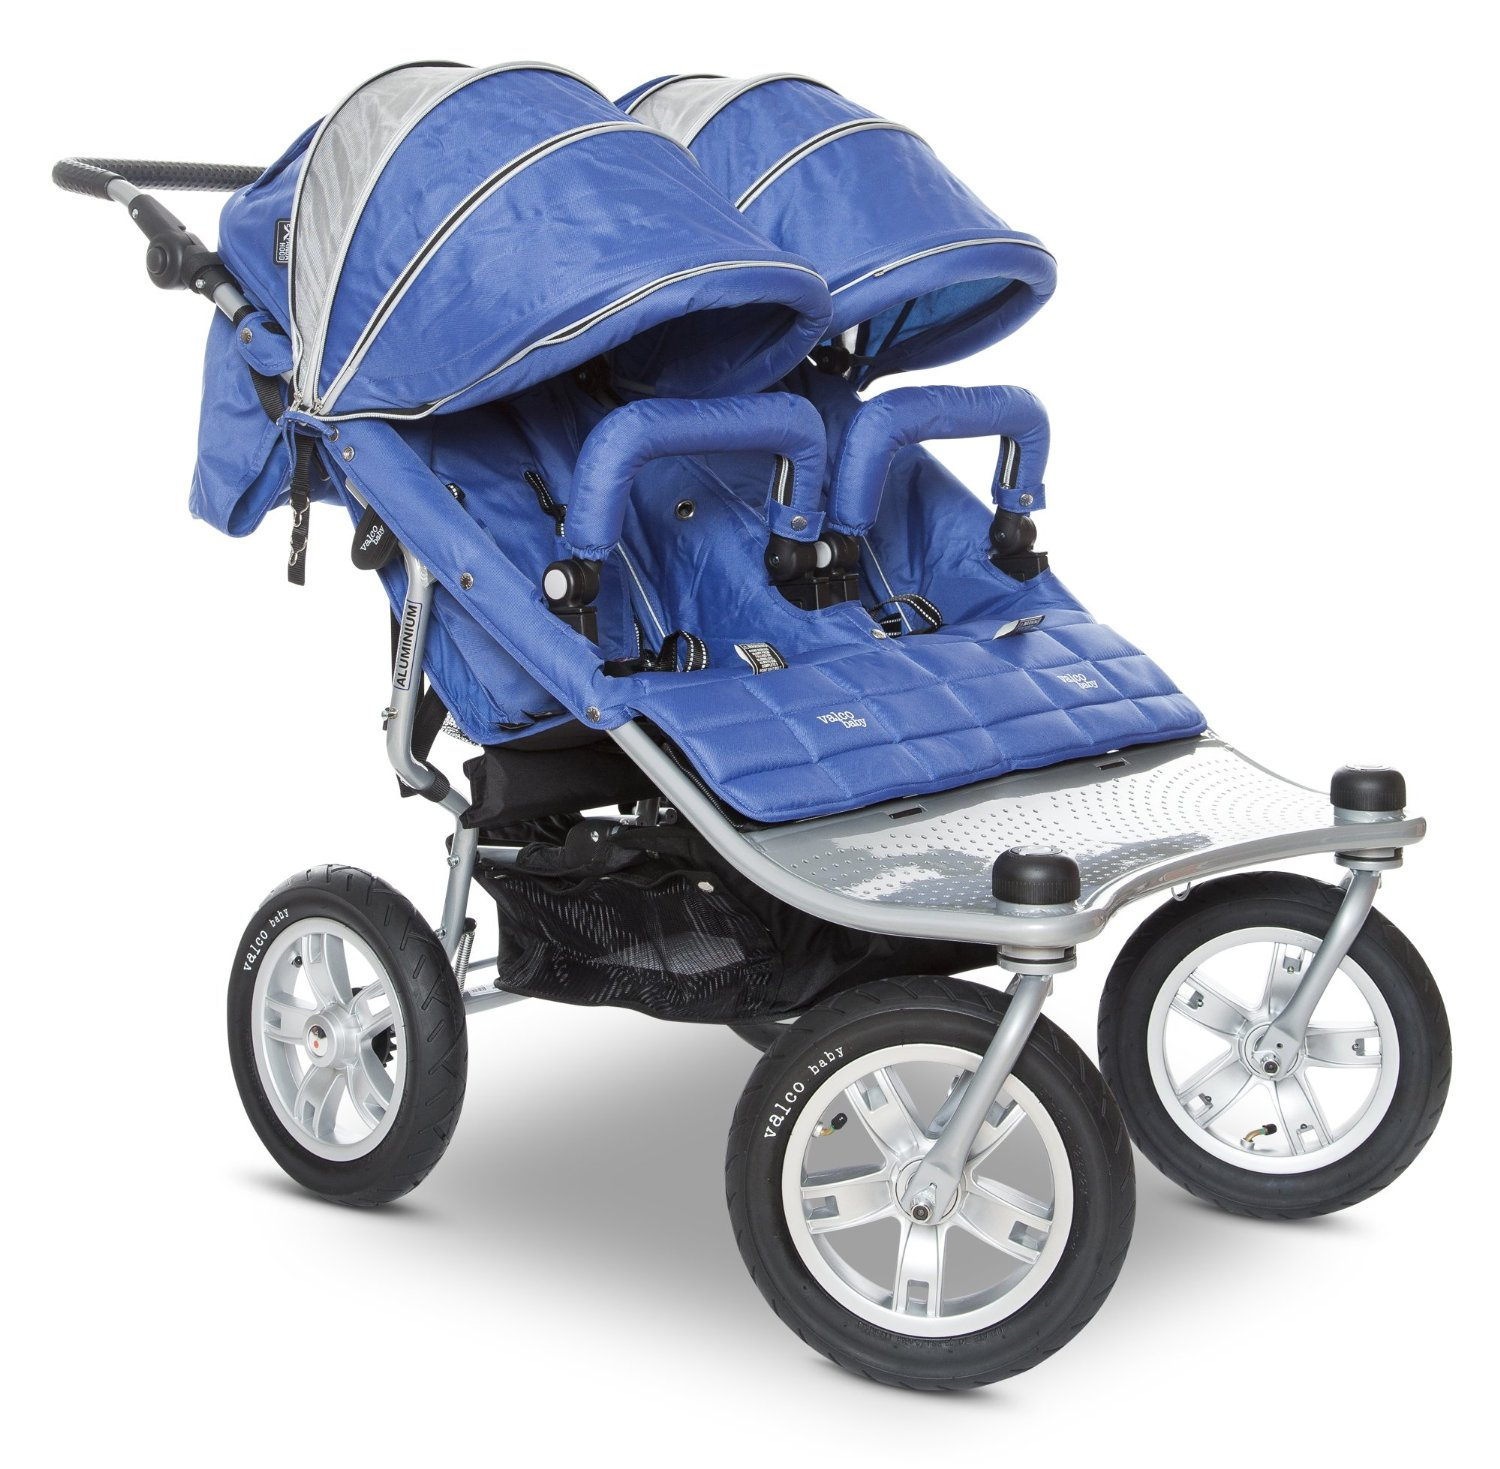 2015 Valco Baby Tri-mode Twin EX Stroller Review